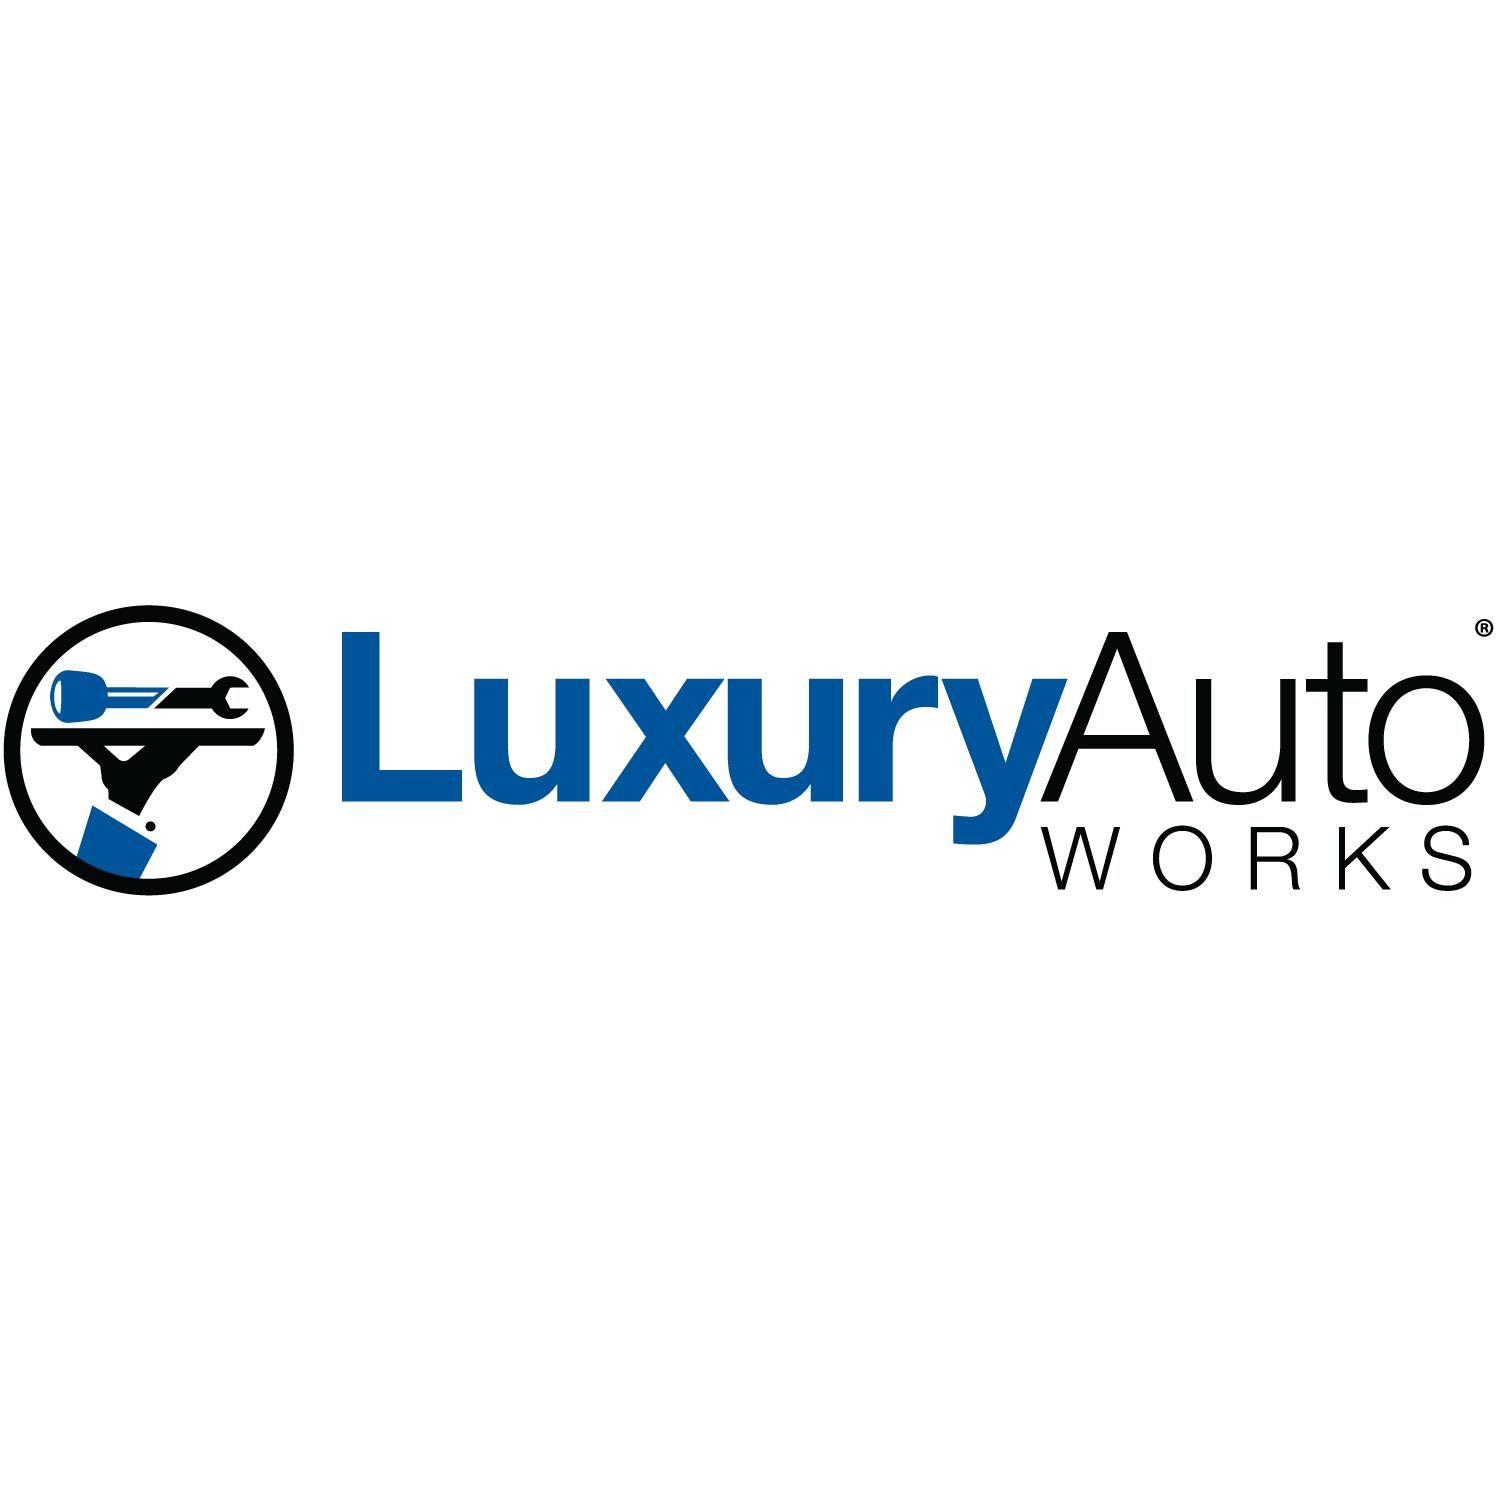 Luxury Auto Works